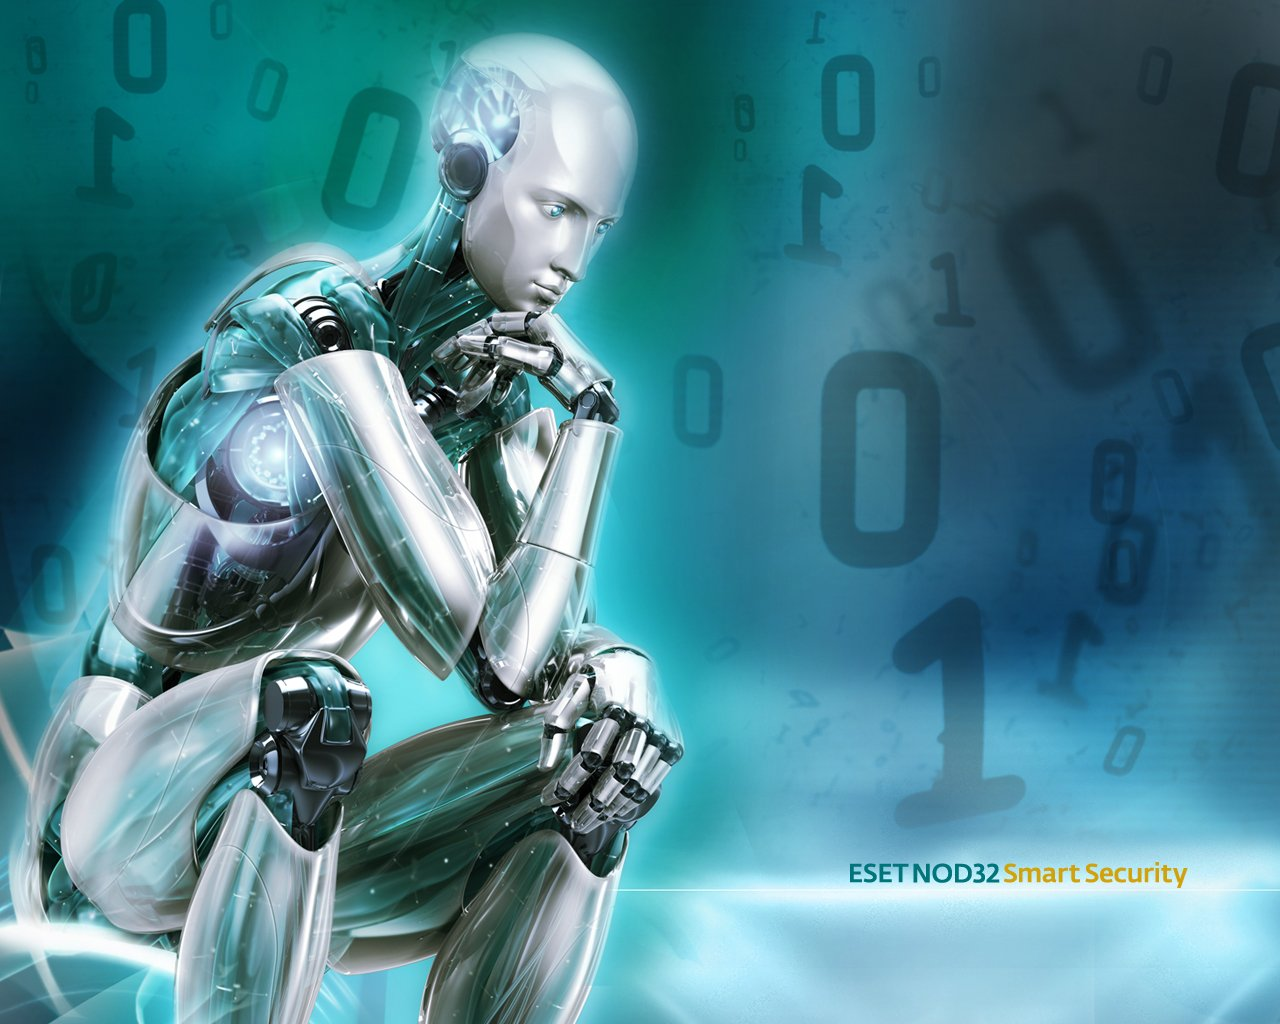 Software » ESET NOD 32 Antivirus and NOD32 Smart Security 4.2.40.0